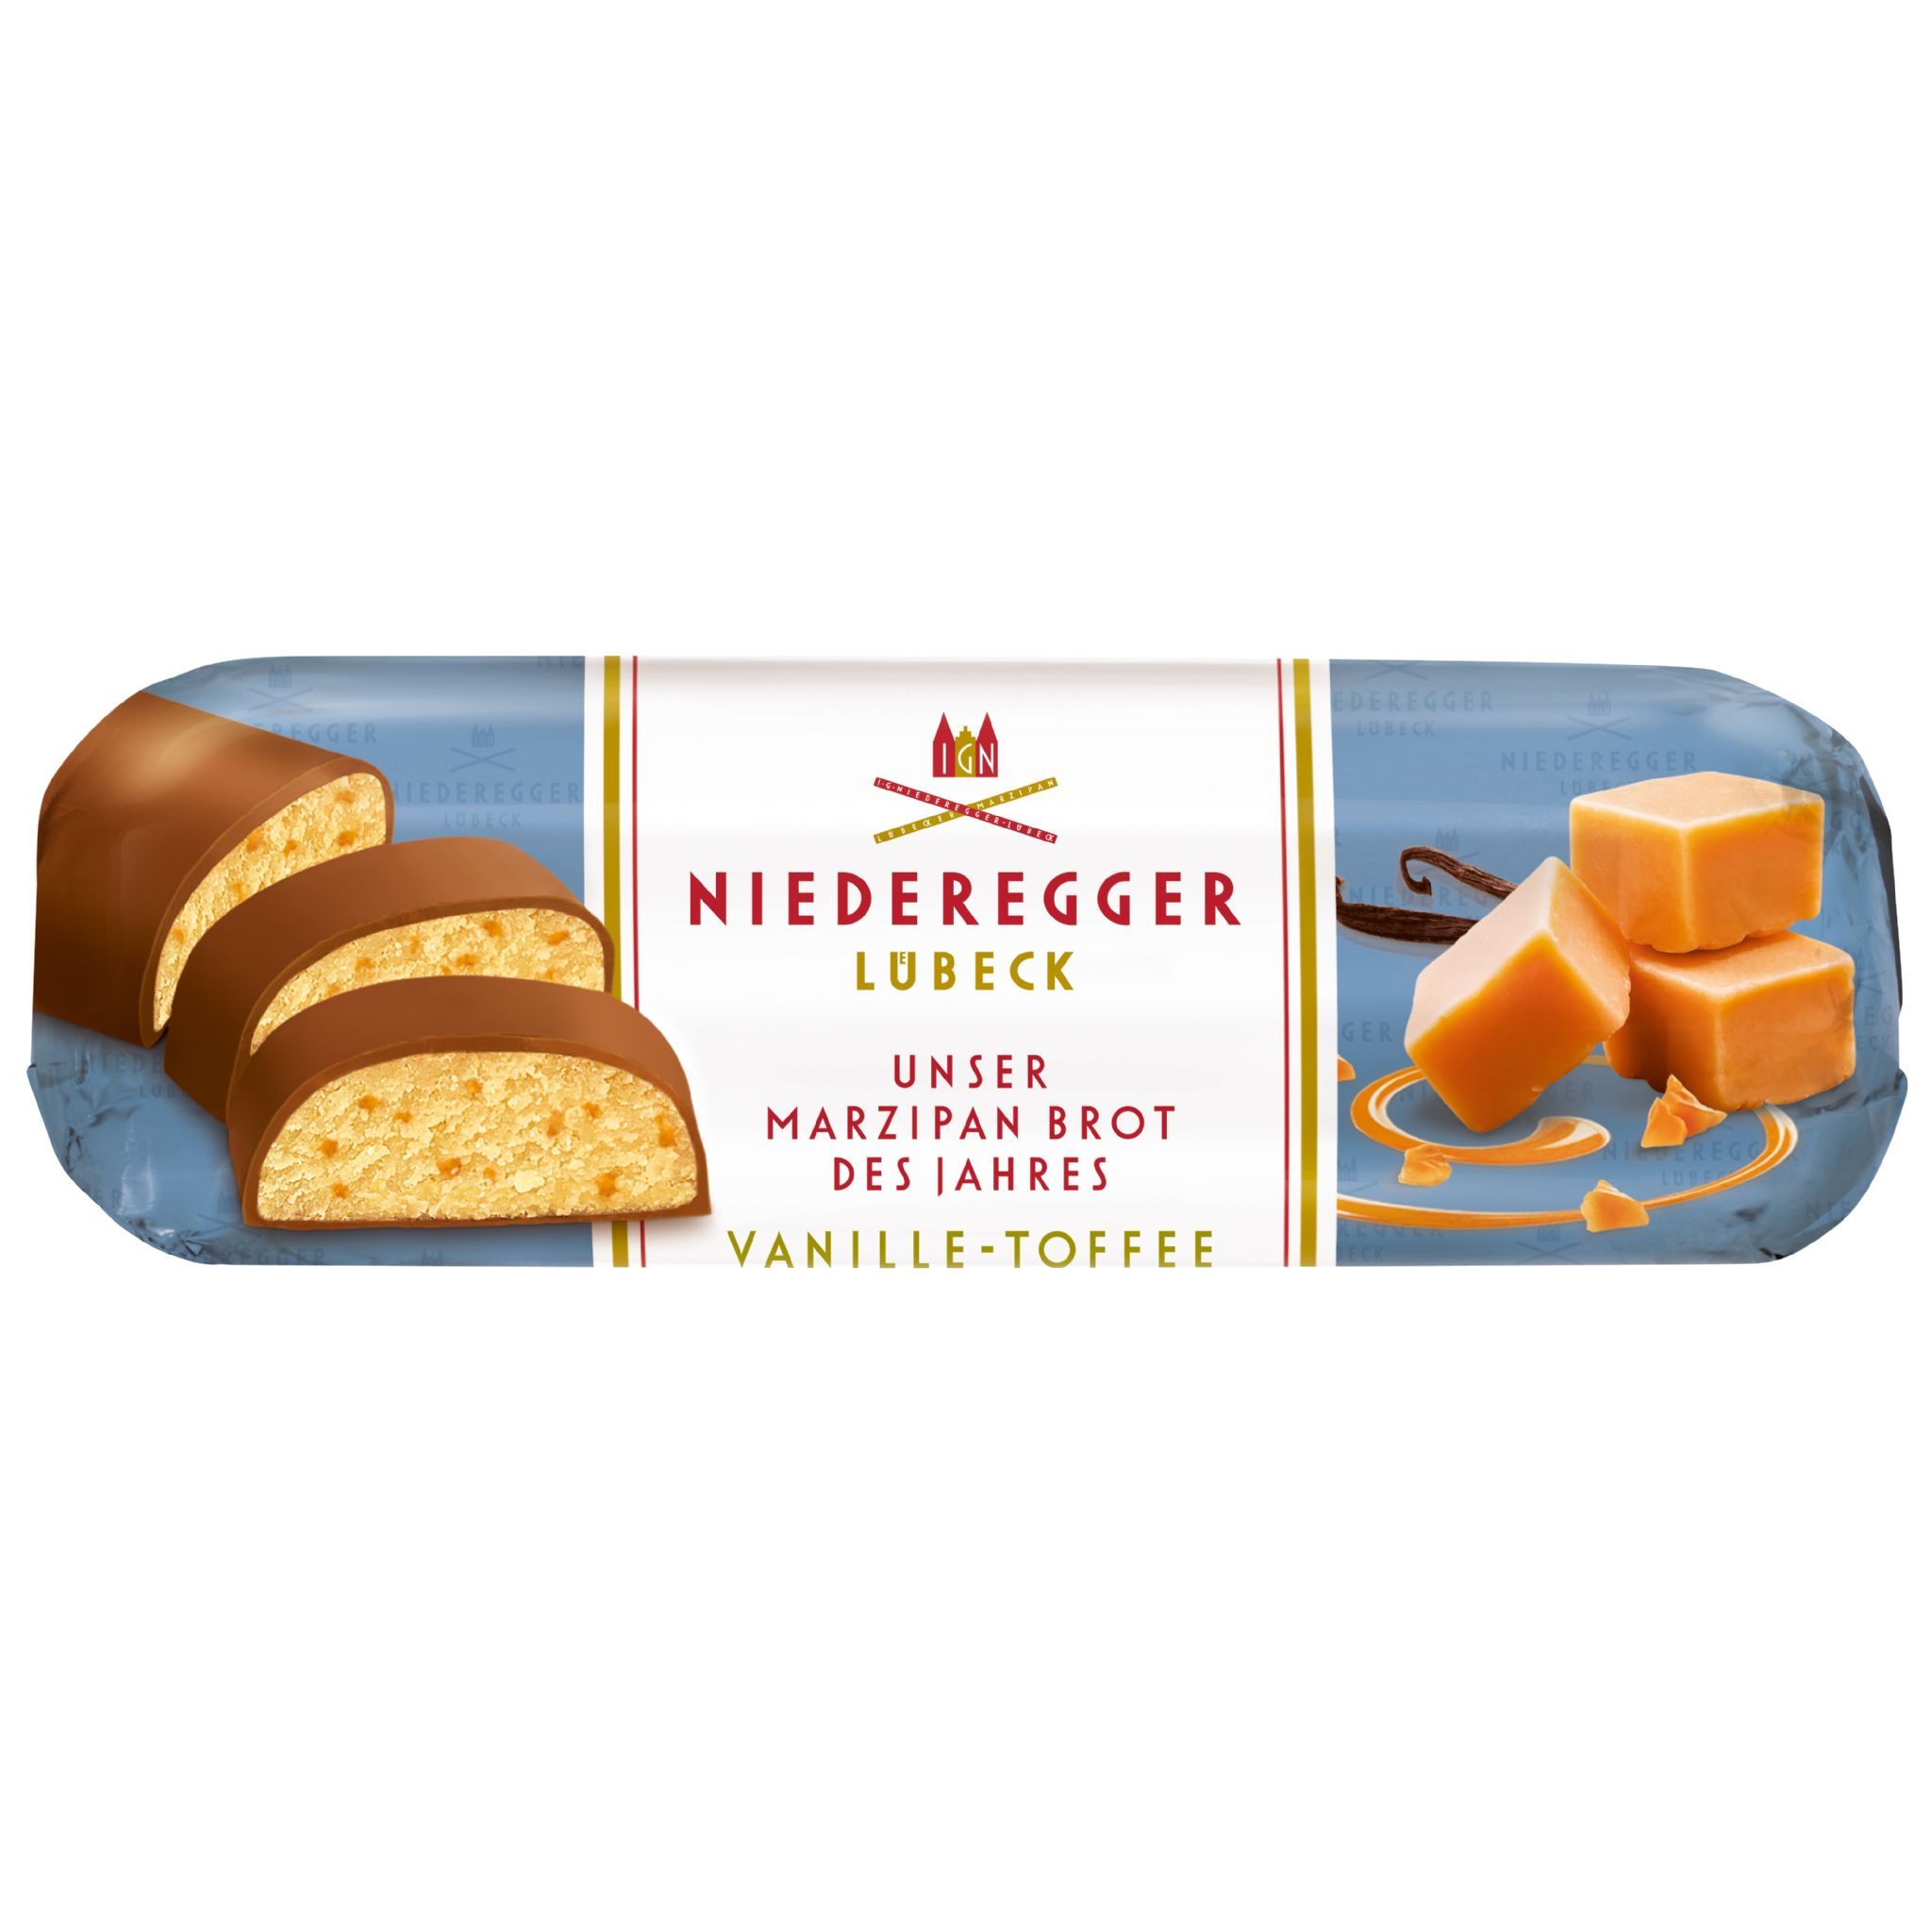 Wholesale Niederegger Walnut and rum marzipan sticks